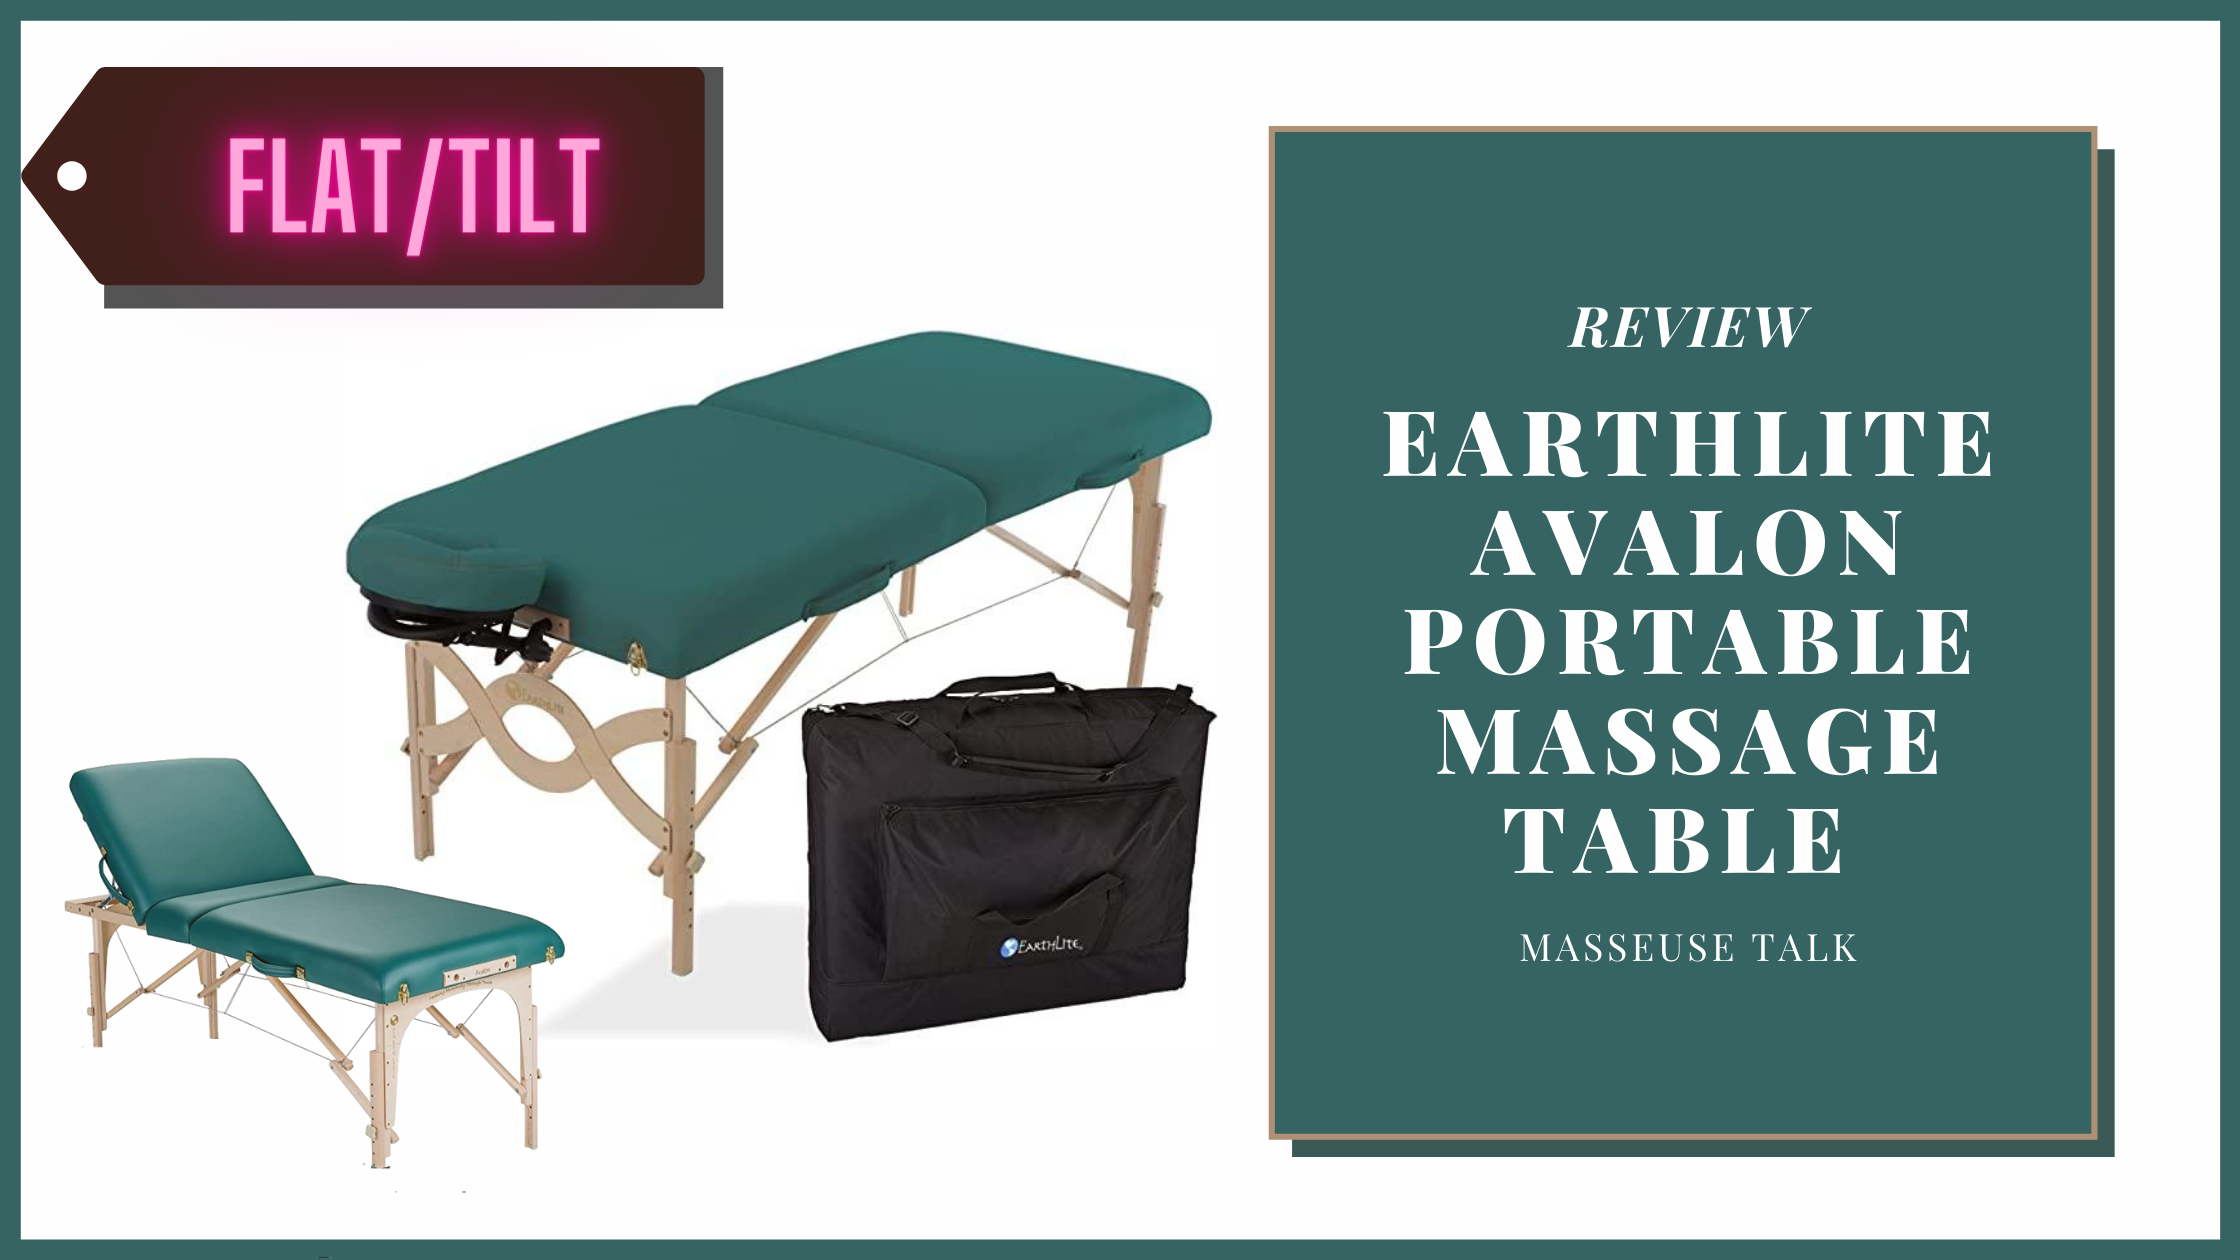 Earthlite Avalon Portable Massage Table